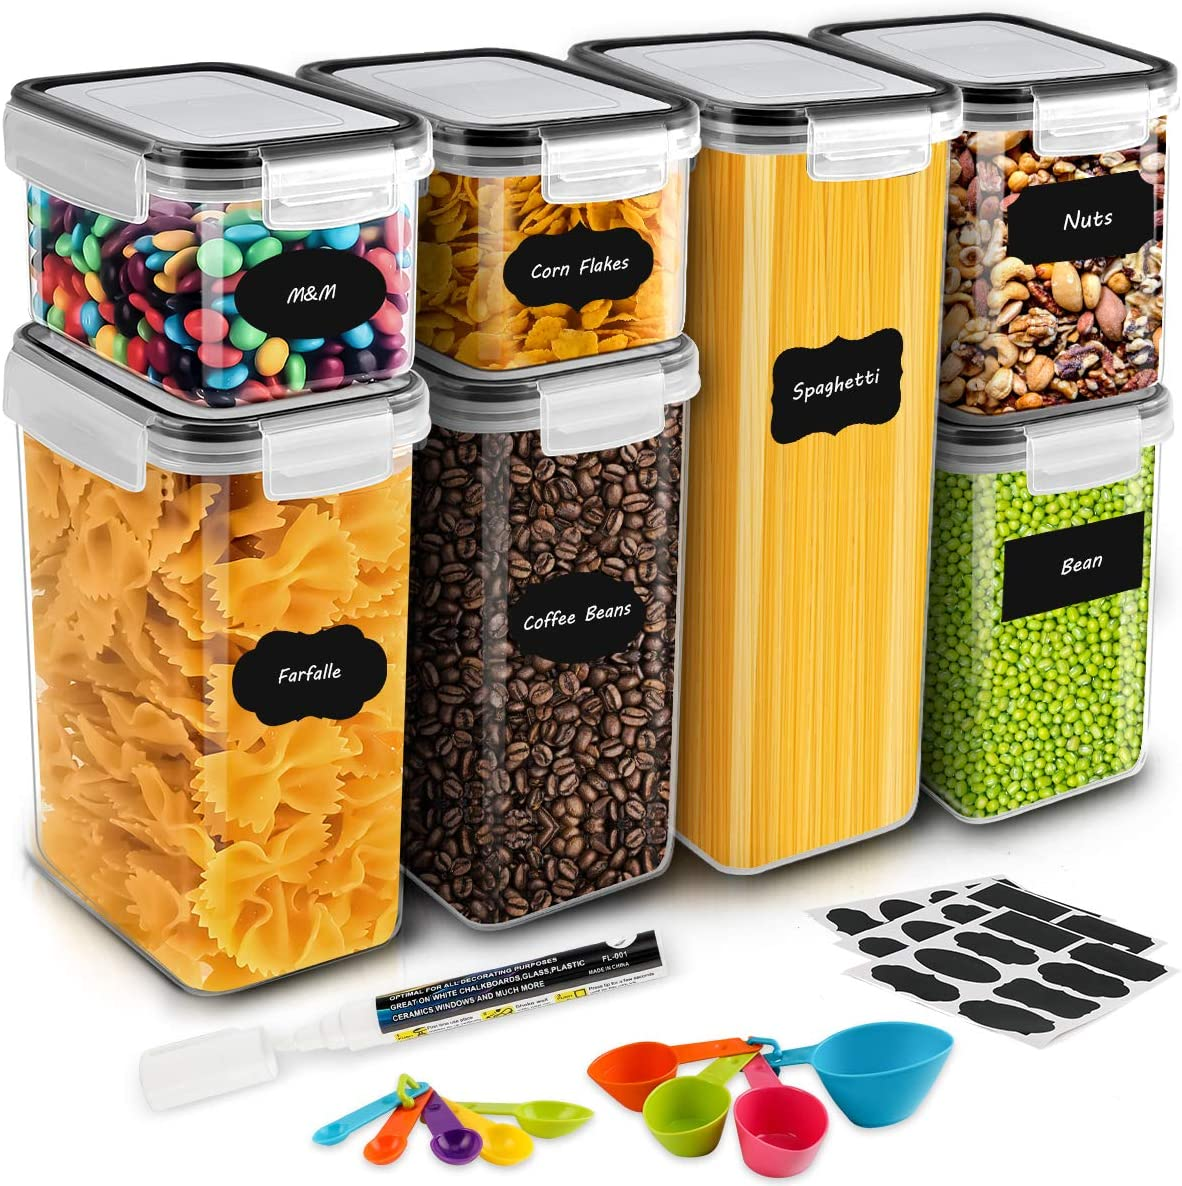 Airtight Food Storage Containers, MOICO 7 PC Plastic Cereal Storage Container with Lids BPA Free, 24 Labels, Spoon Set & Pen, Pantry & Kitchen Storage Containers for Flour, Dry Food, Pasta